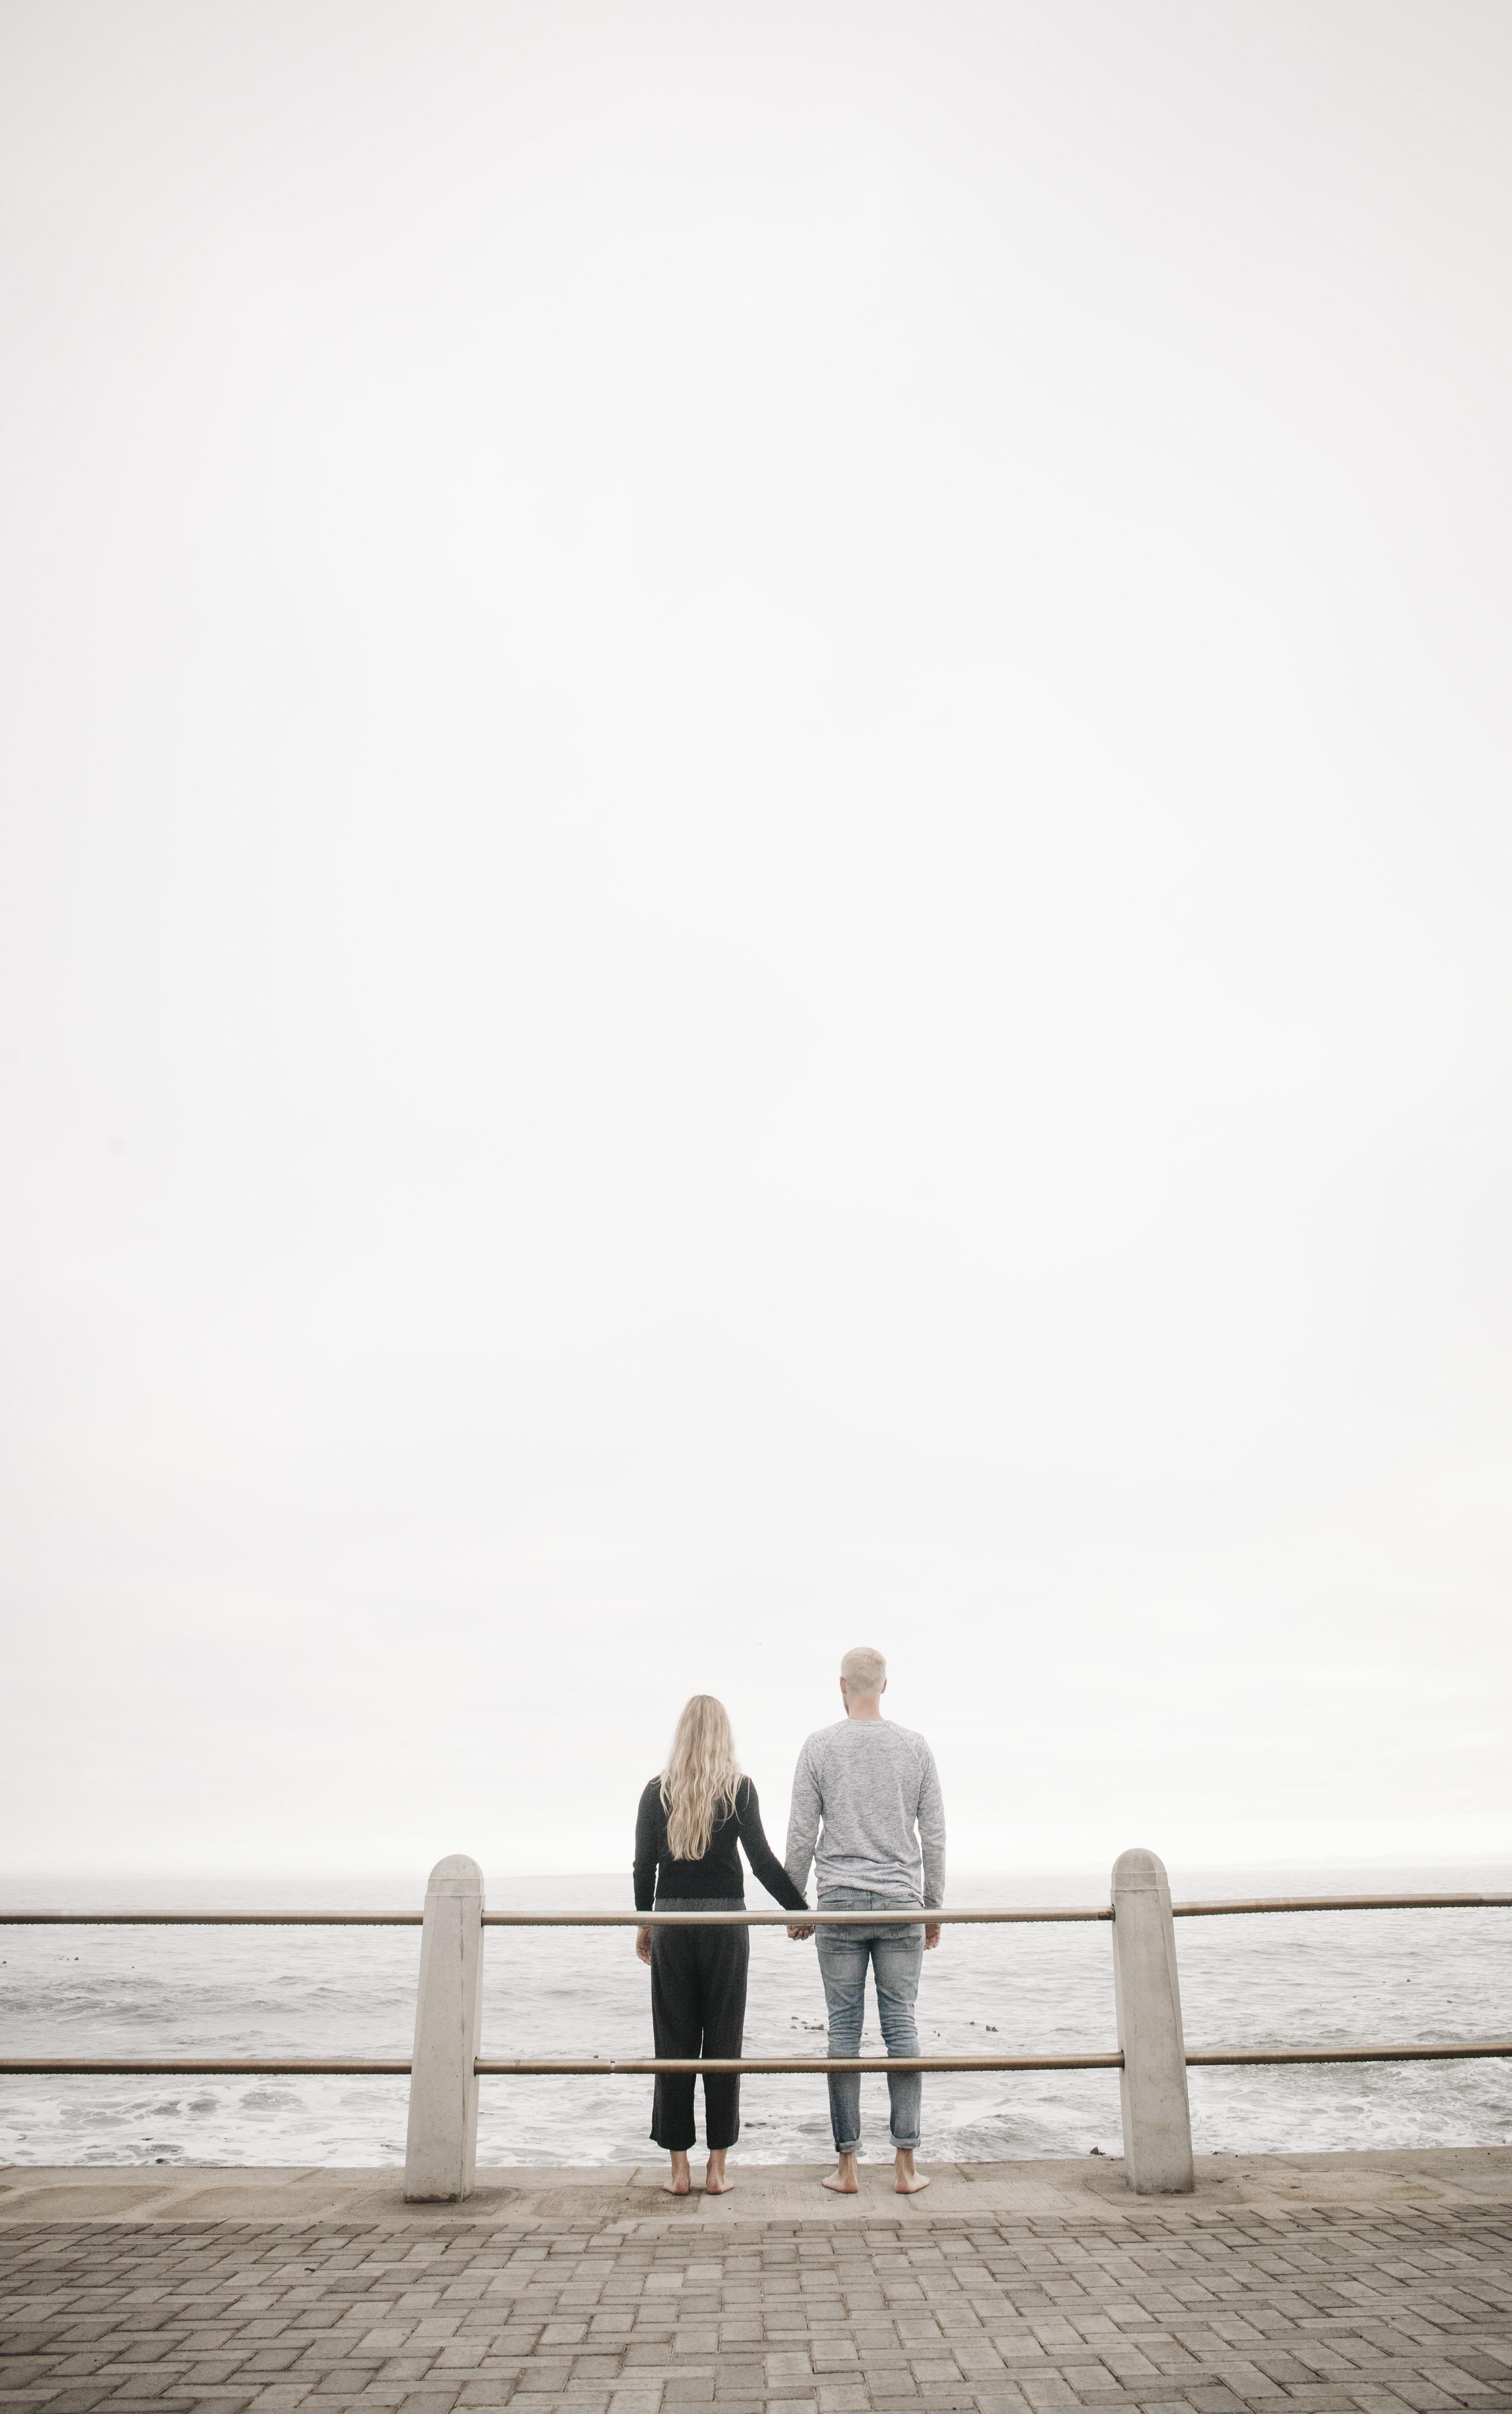 couple leaning on guard rail while holdings hands facing ocean at daytime